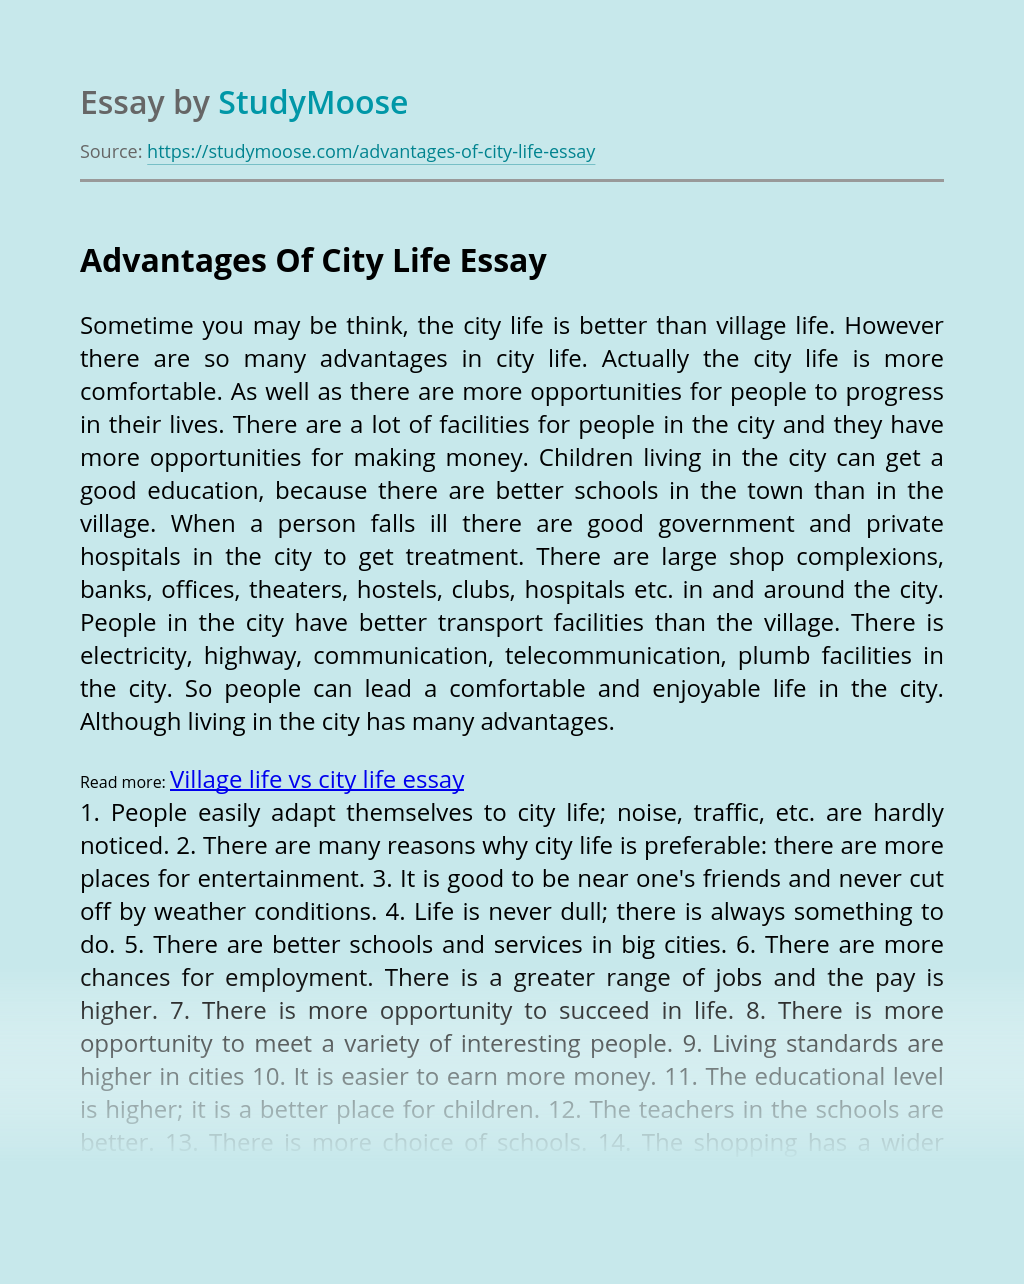 Advantages Of City Life